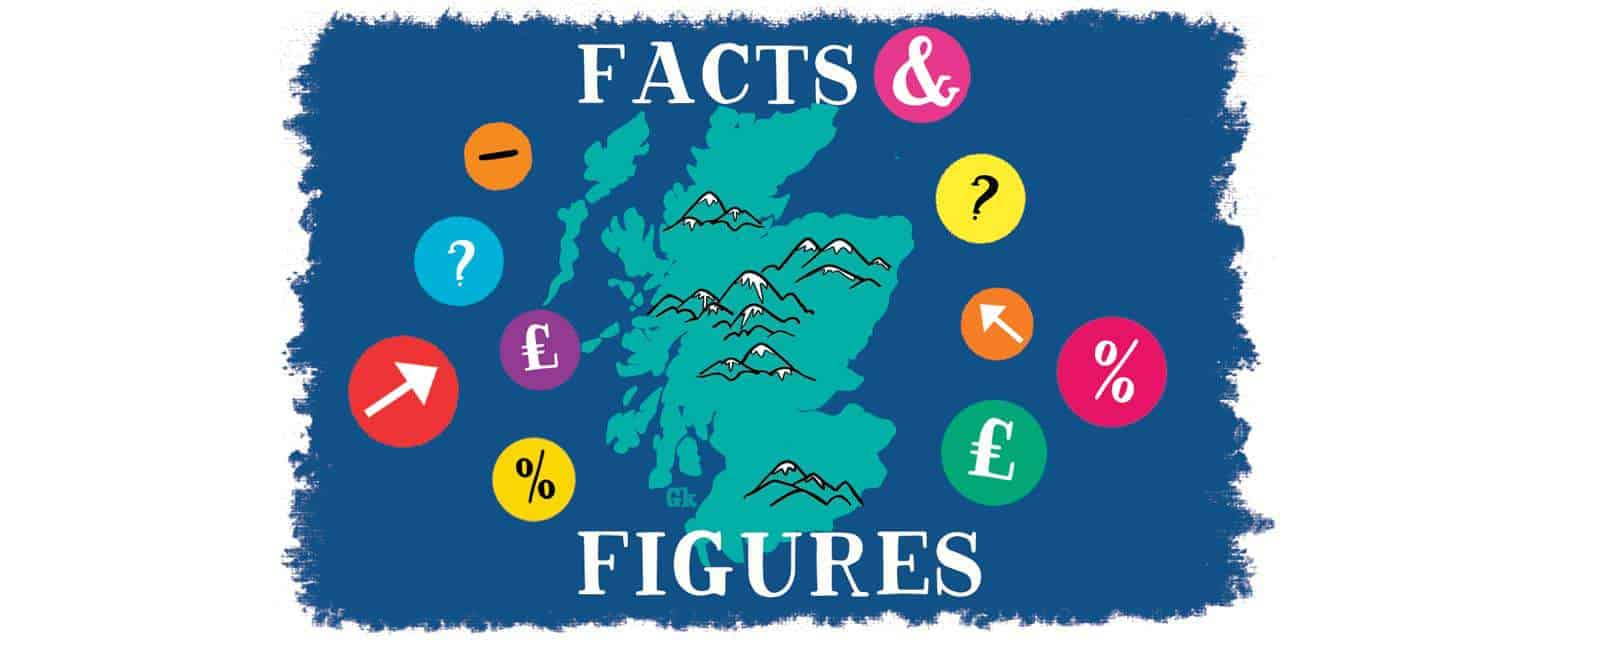 Scottish Facts and Figures illustration